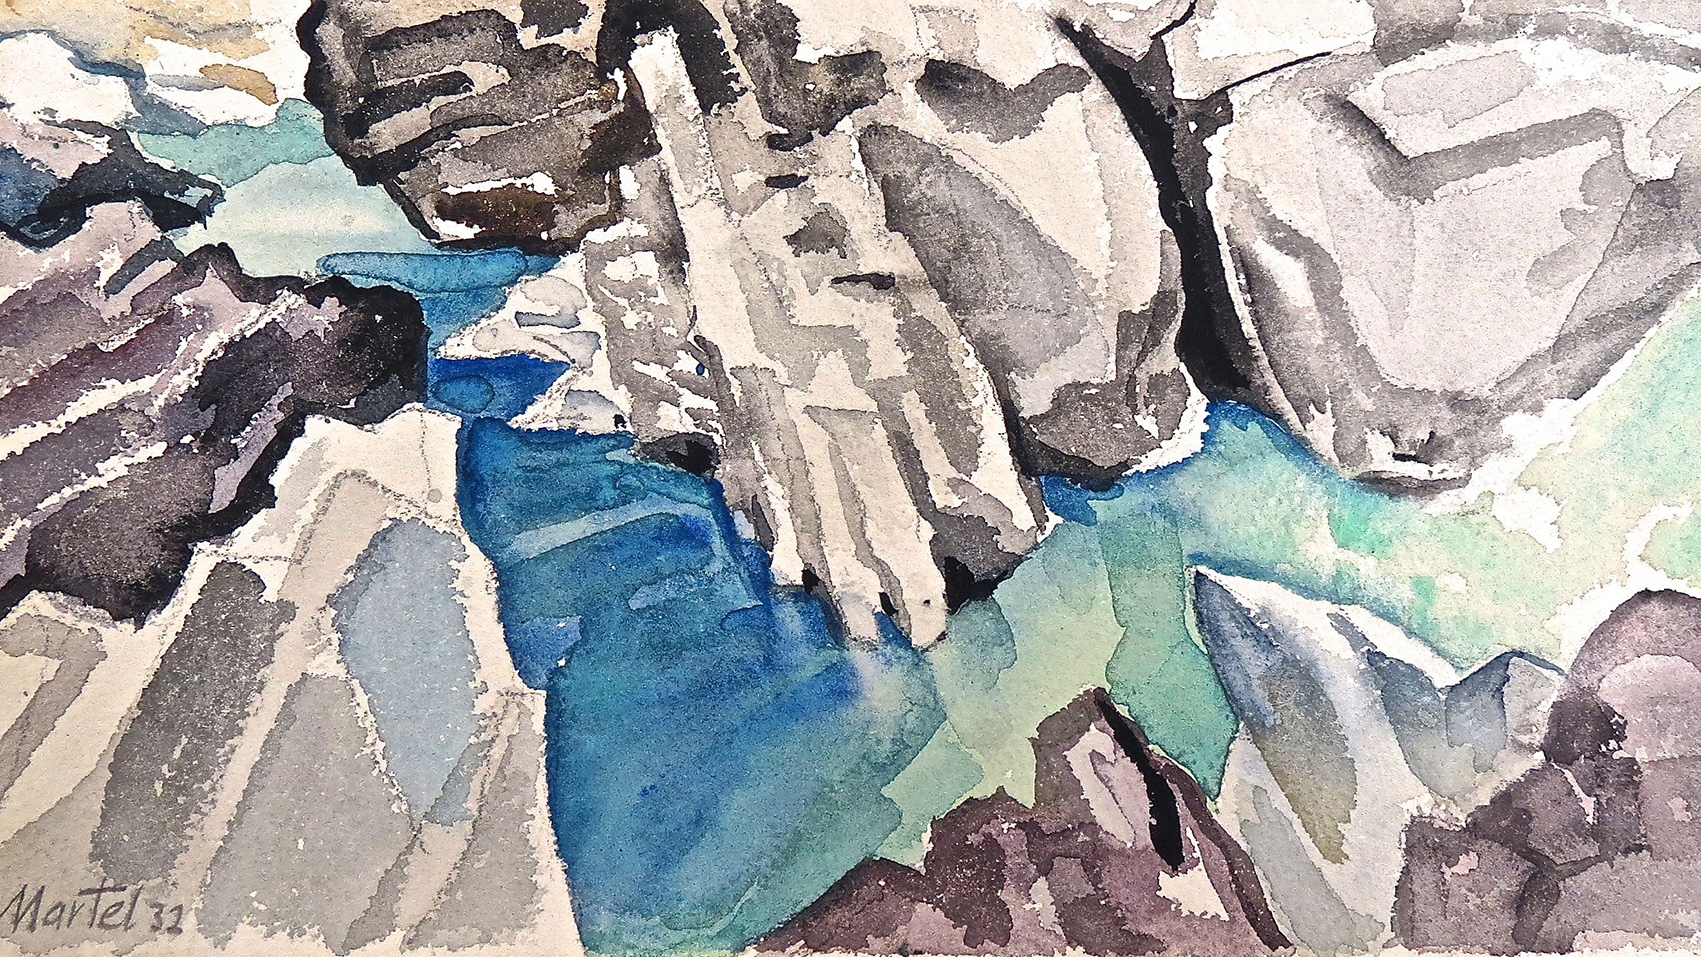 Martel Schwichtenberg | Wildwater Gorge | 1932 | watercolour over pencil on cardboard | signed and dated | 11.7 x 20.8